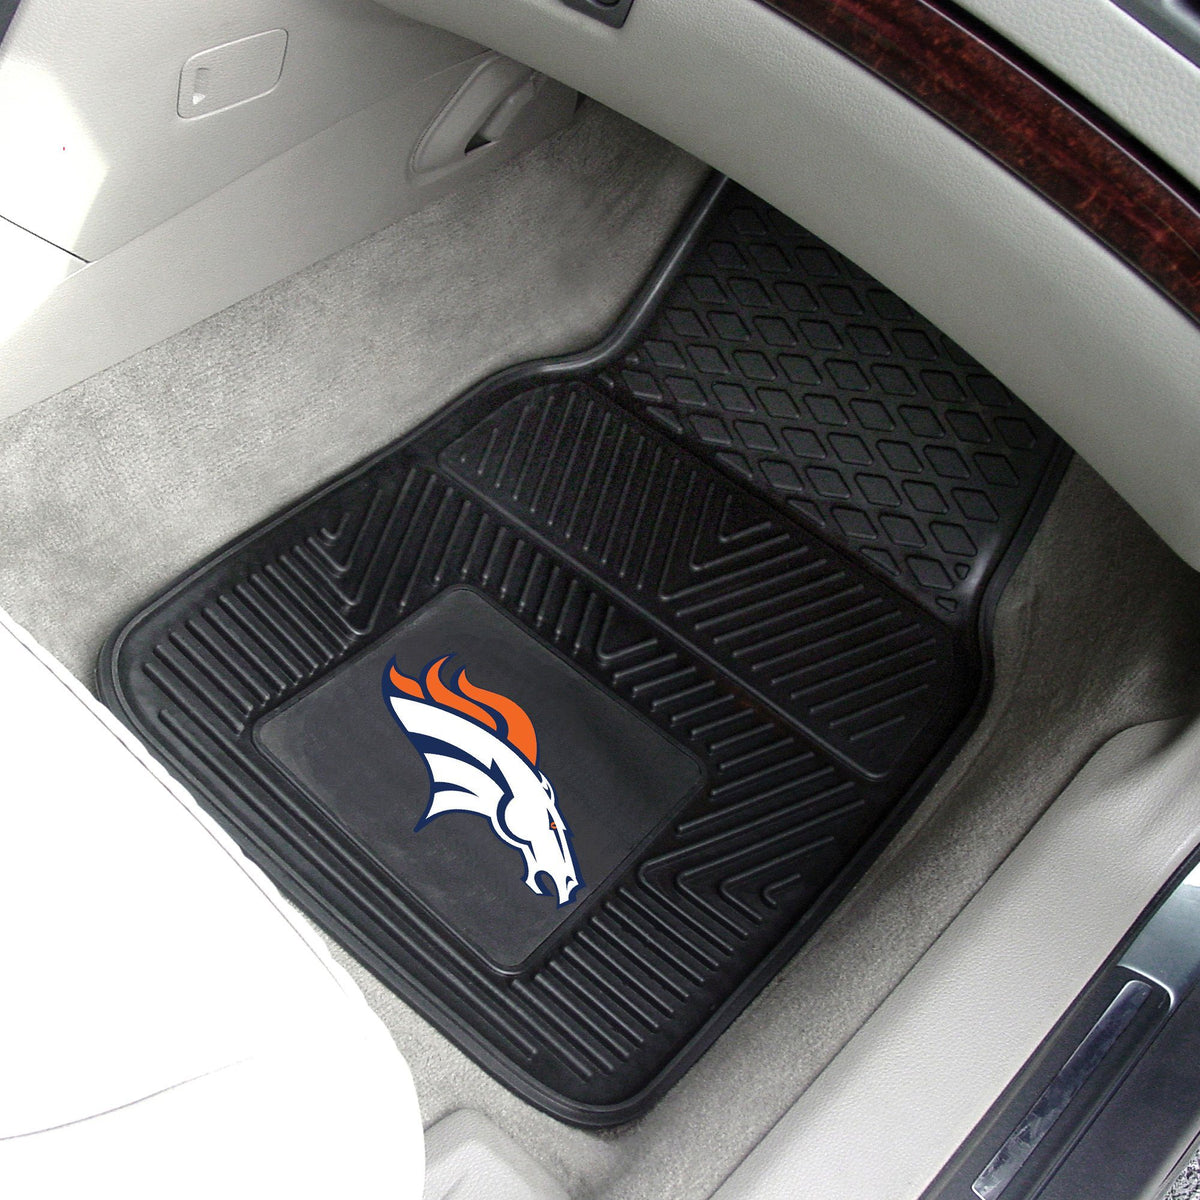 NFL - 2-pc Vinyl Car Mat Set NFL Mats, Front Car Mats, 2-pc Vinyl Car Mat Set, NFL, Auto Fan Mats Denver Broncos